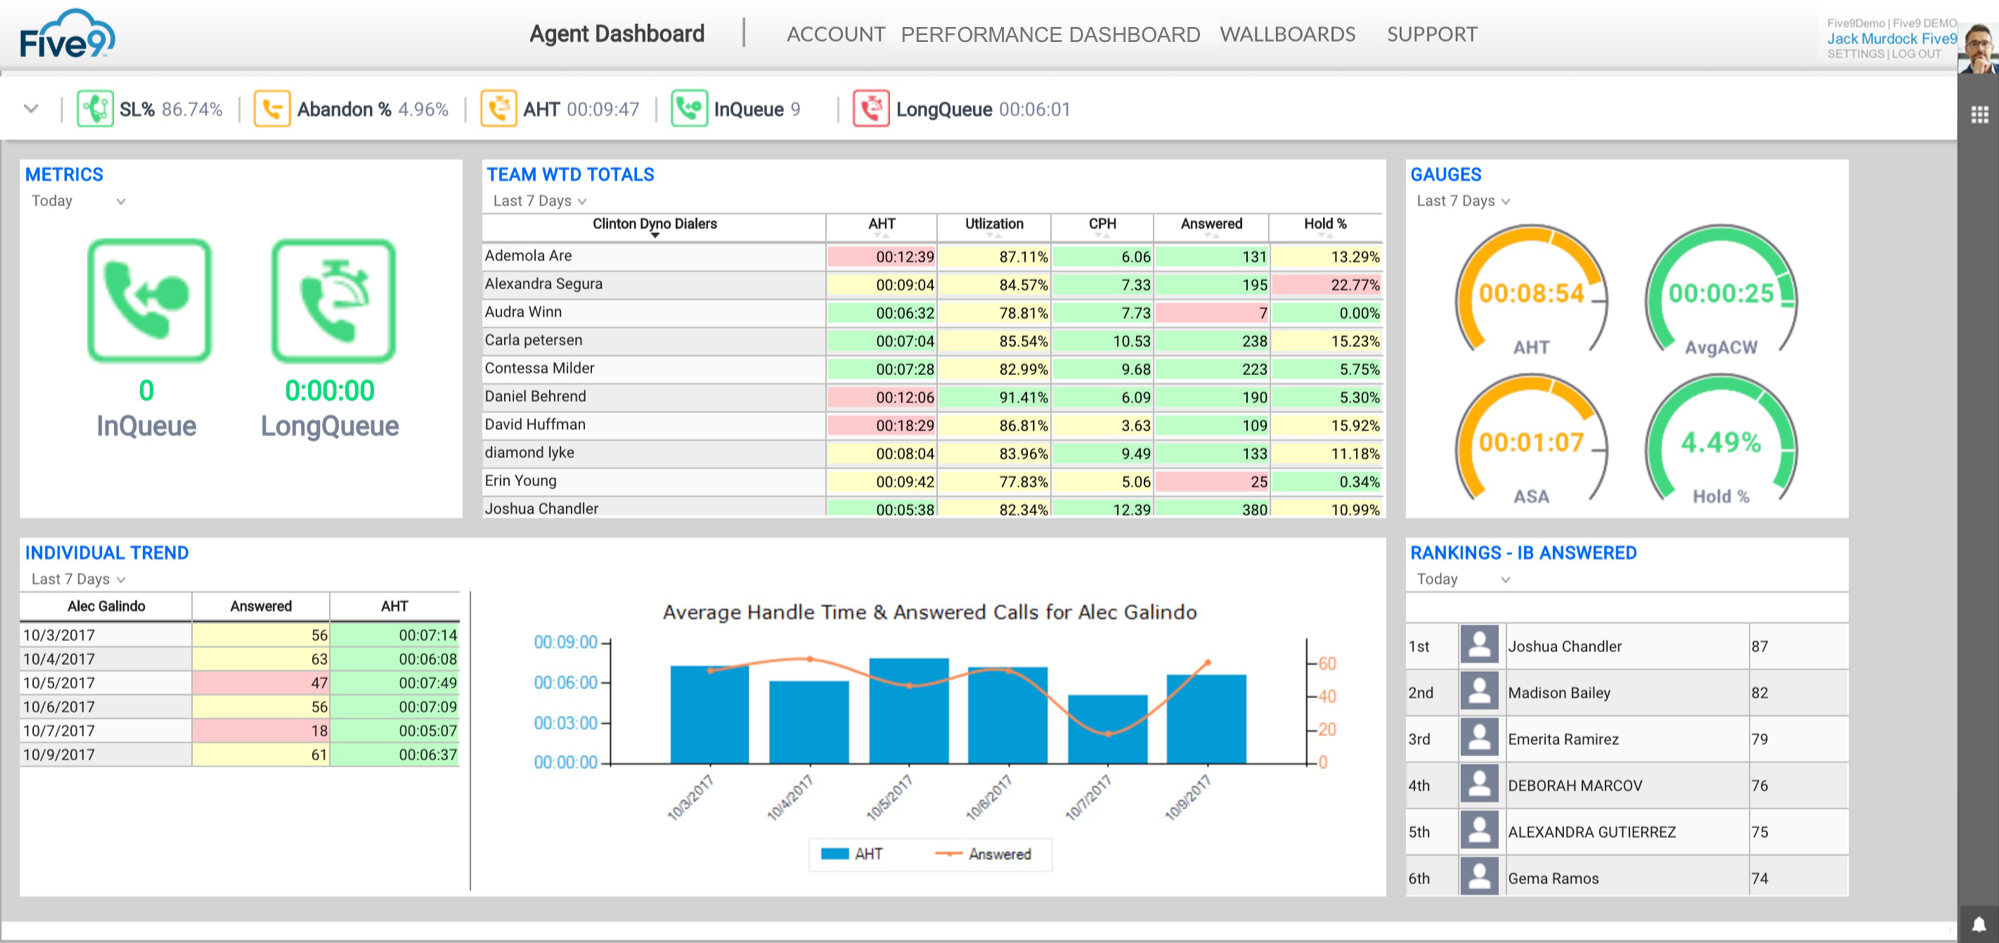 Agent dashboard with performance metrics